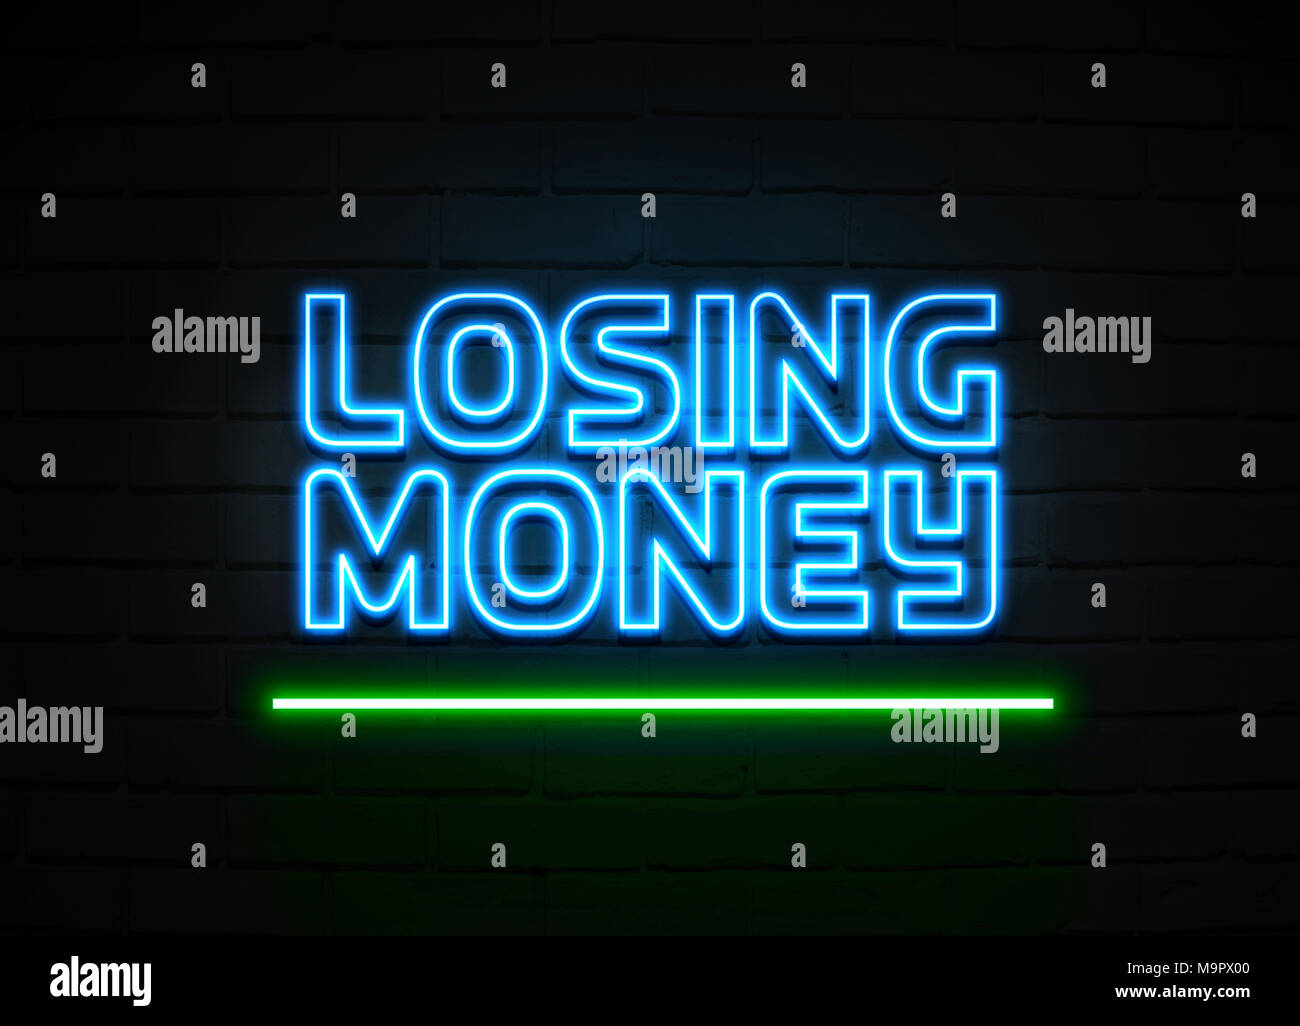 Losing Money neon sign - Glowing Neon Sign on brickwall wall - 3D rendered royalty free stock illustration. Stock Photo